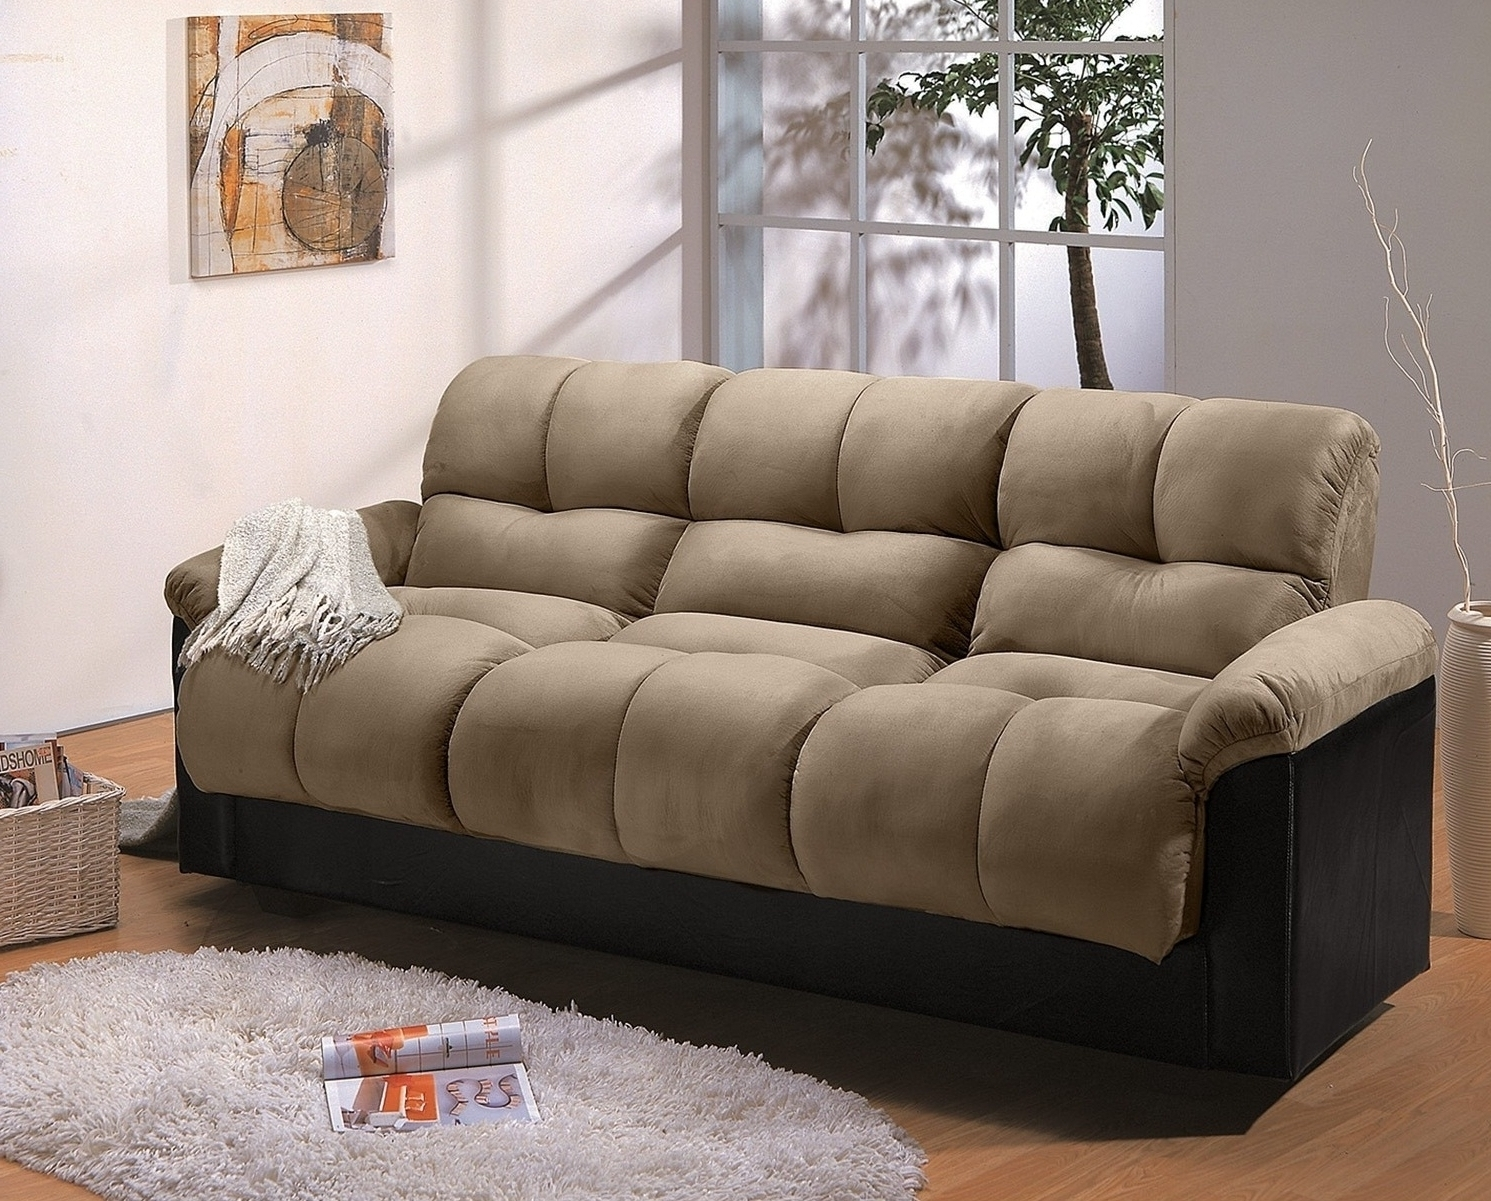 Popular Lazy Boy Sectional Sofa Grand Home Furnishings — The Home Redesign Within Grand Furniture Sectional Sofas (View 15 of 20)